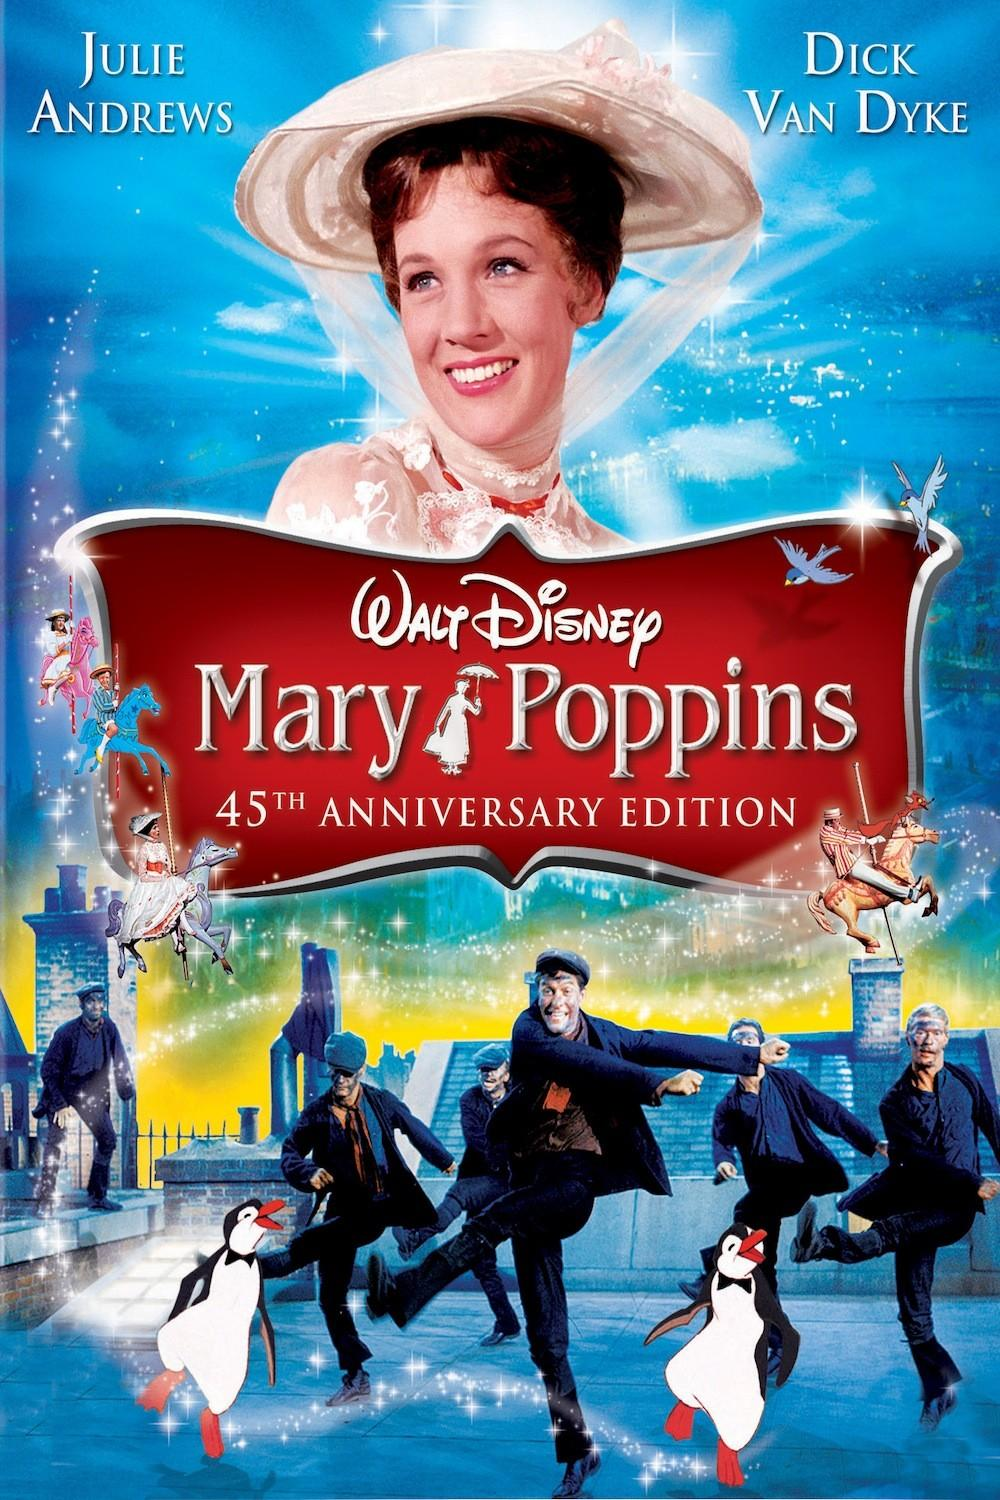 Mary Poppins (film)/Gallery